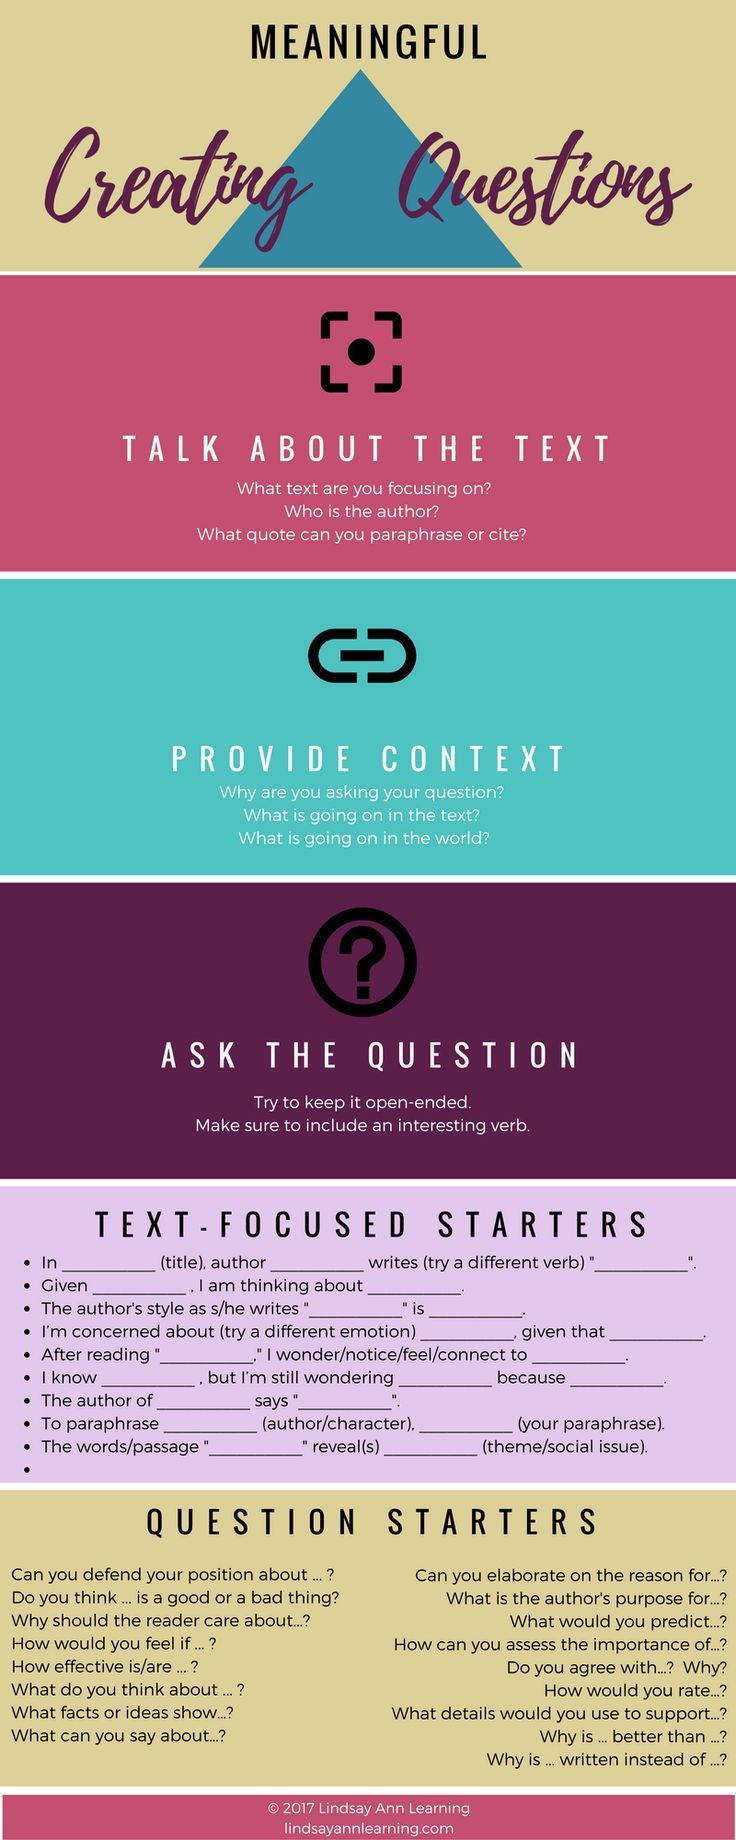 61 best Novel Units images on Pinterest | School, Learning and ...